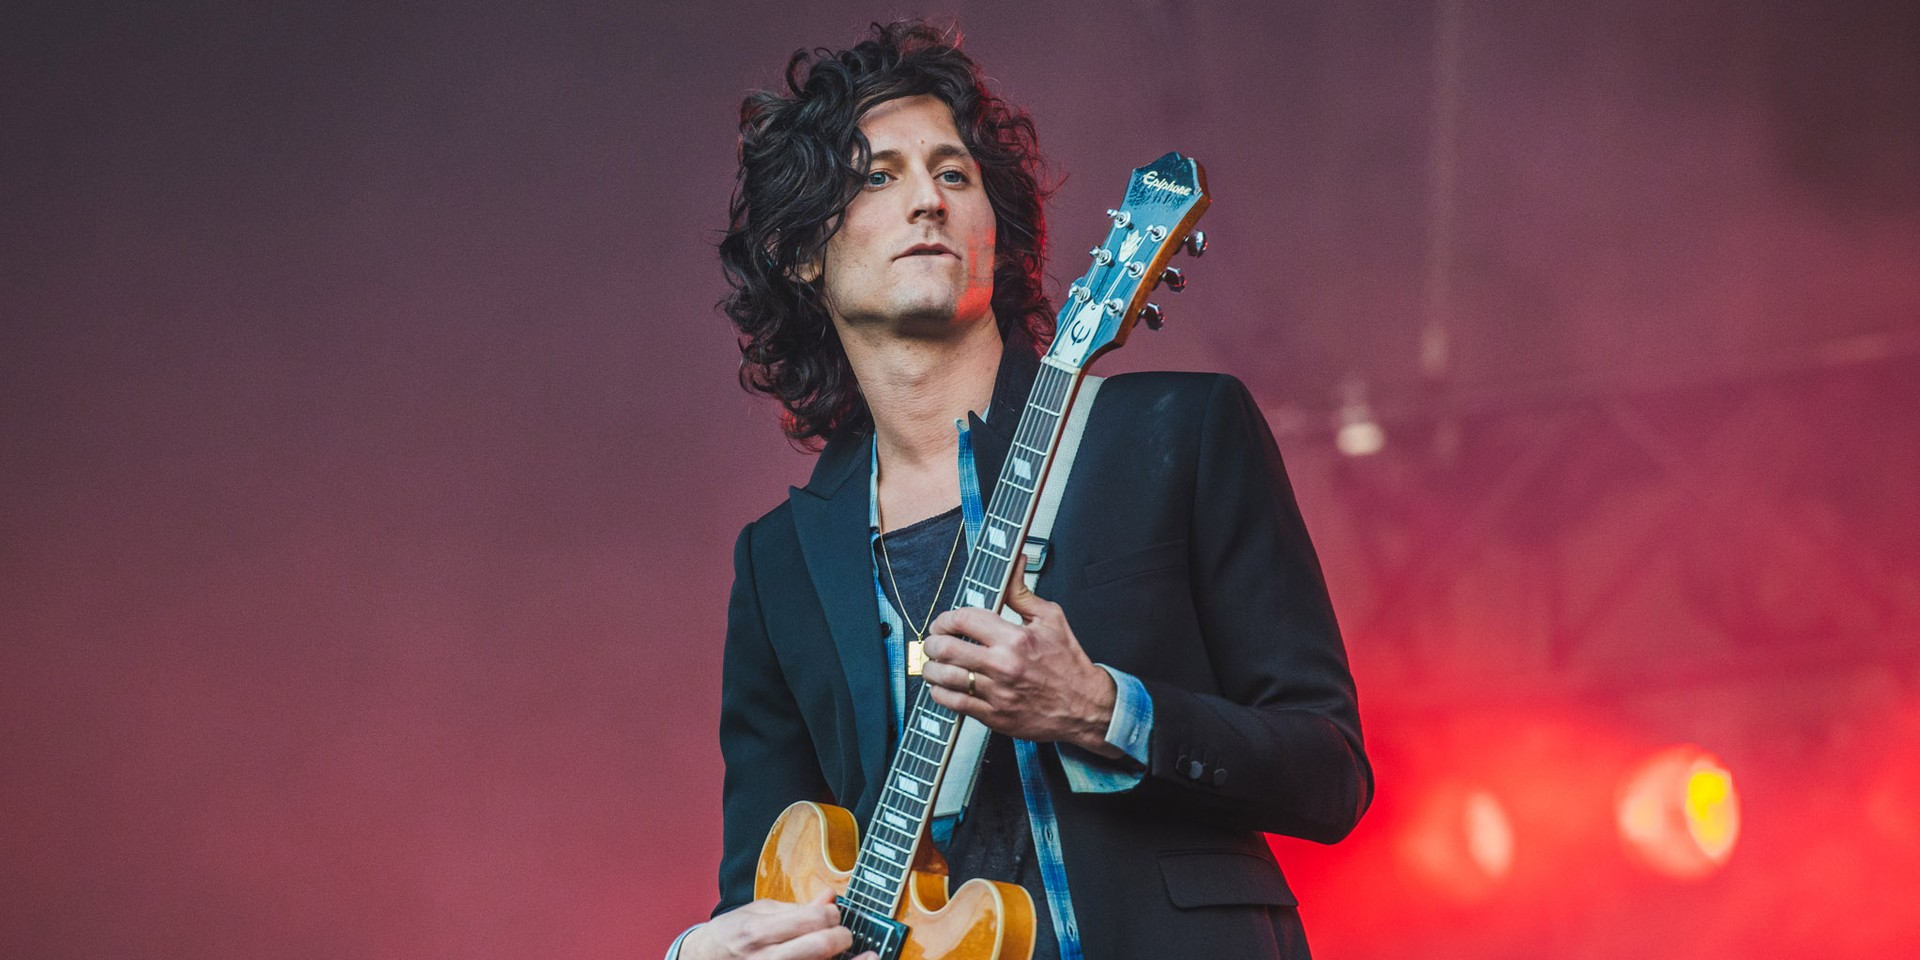 Nick Valensi hints that The Strokes' new album is finished